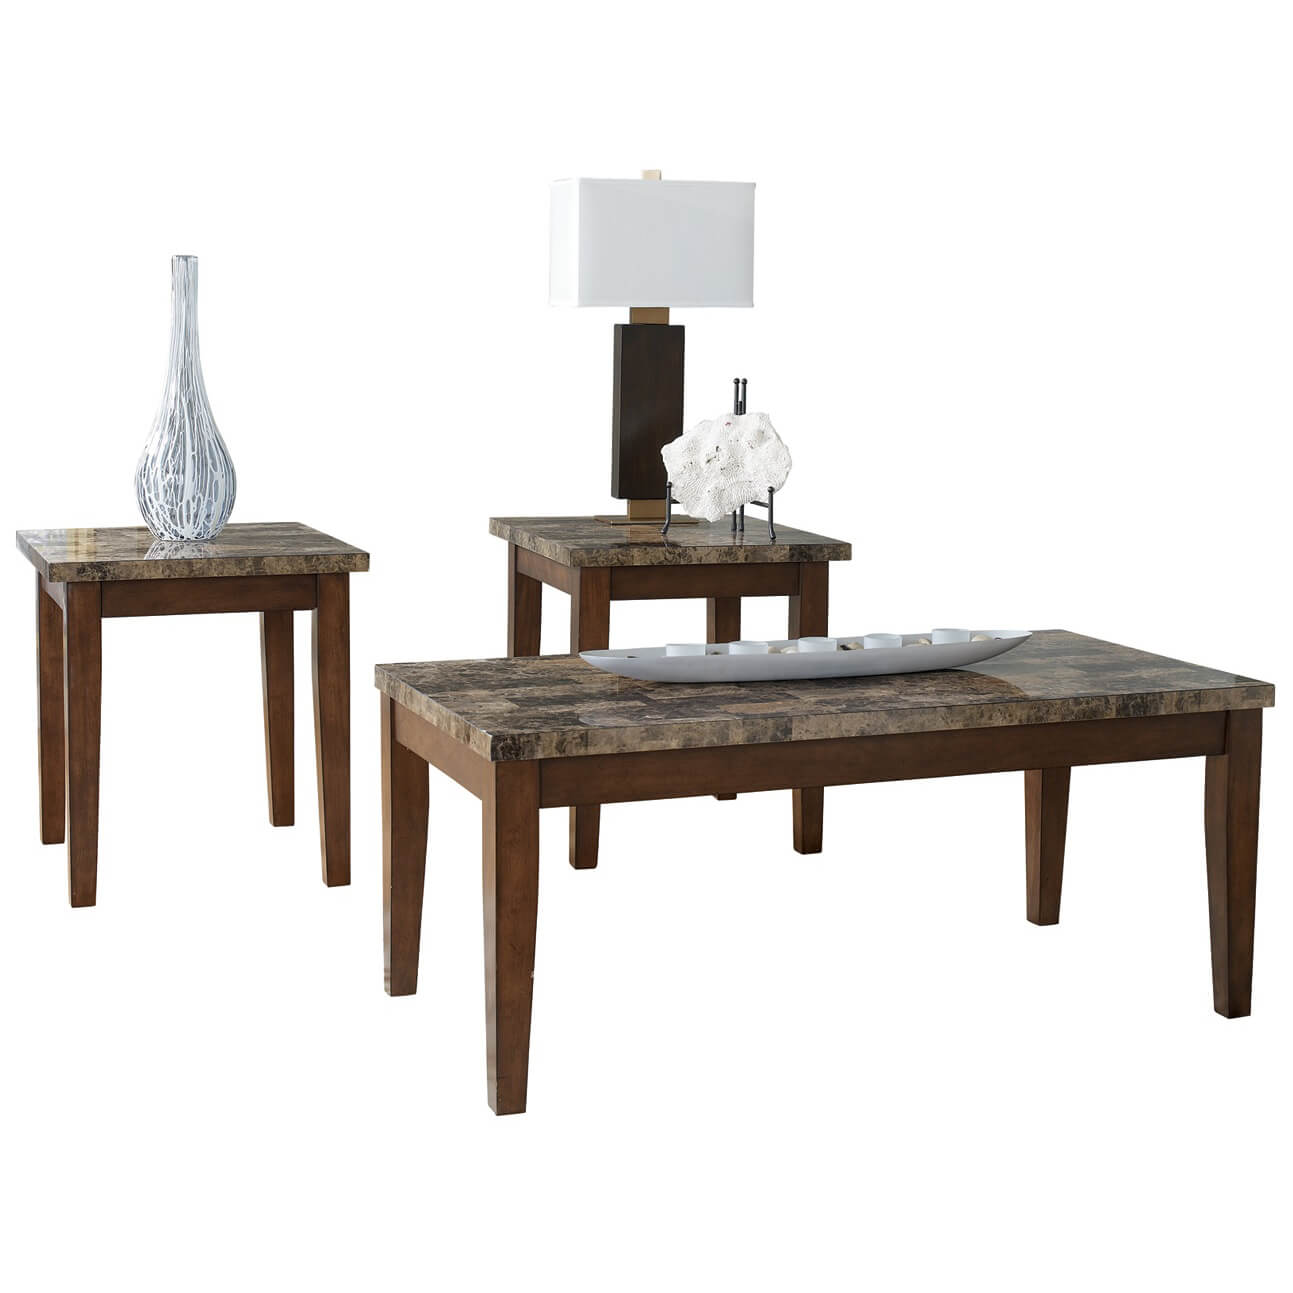 Occasional Tables - Theo